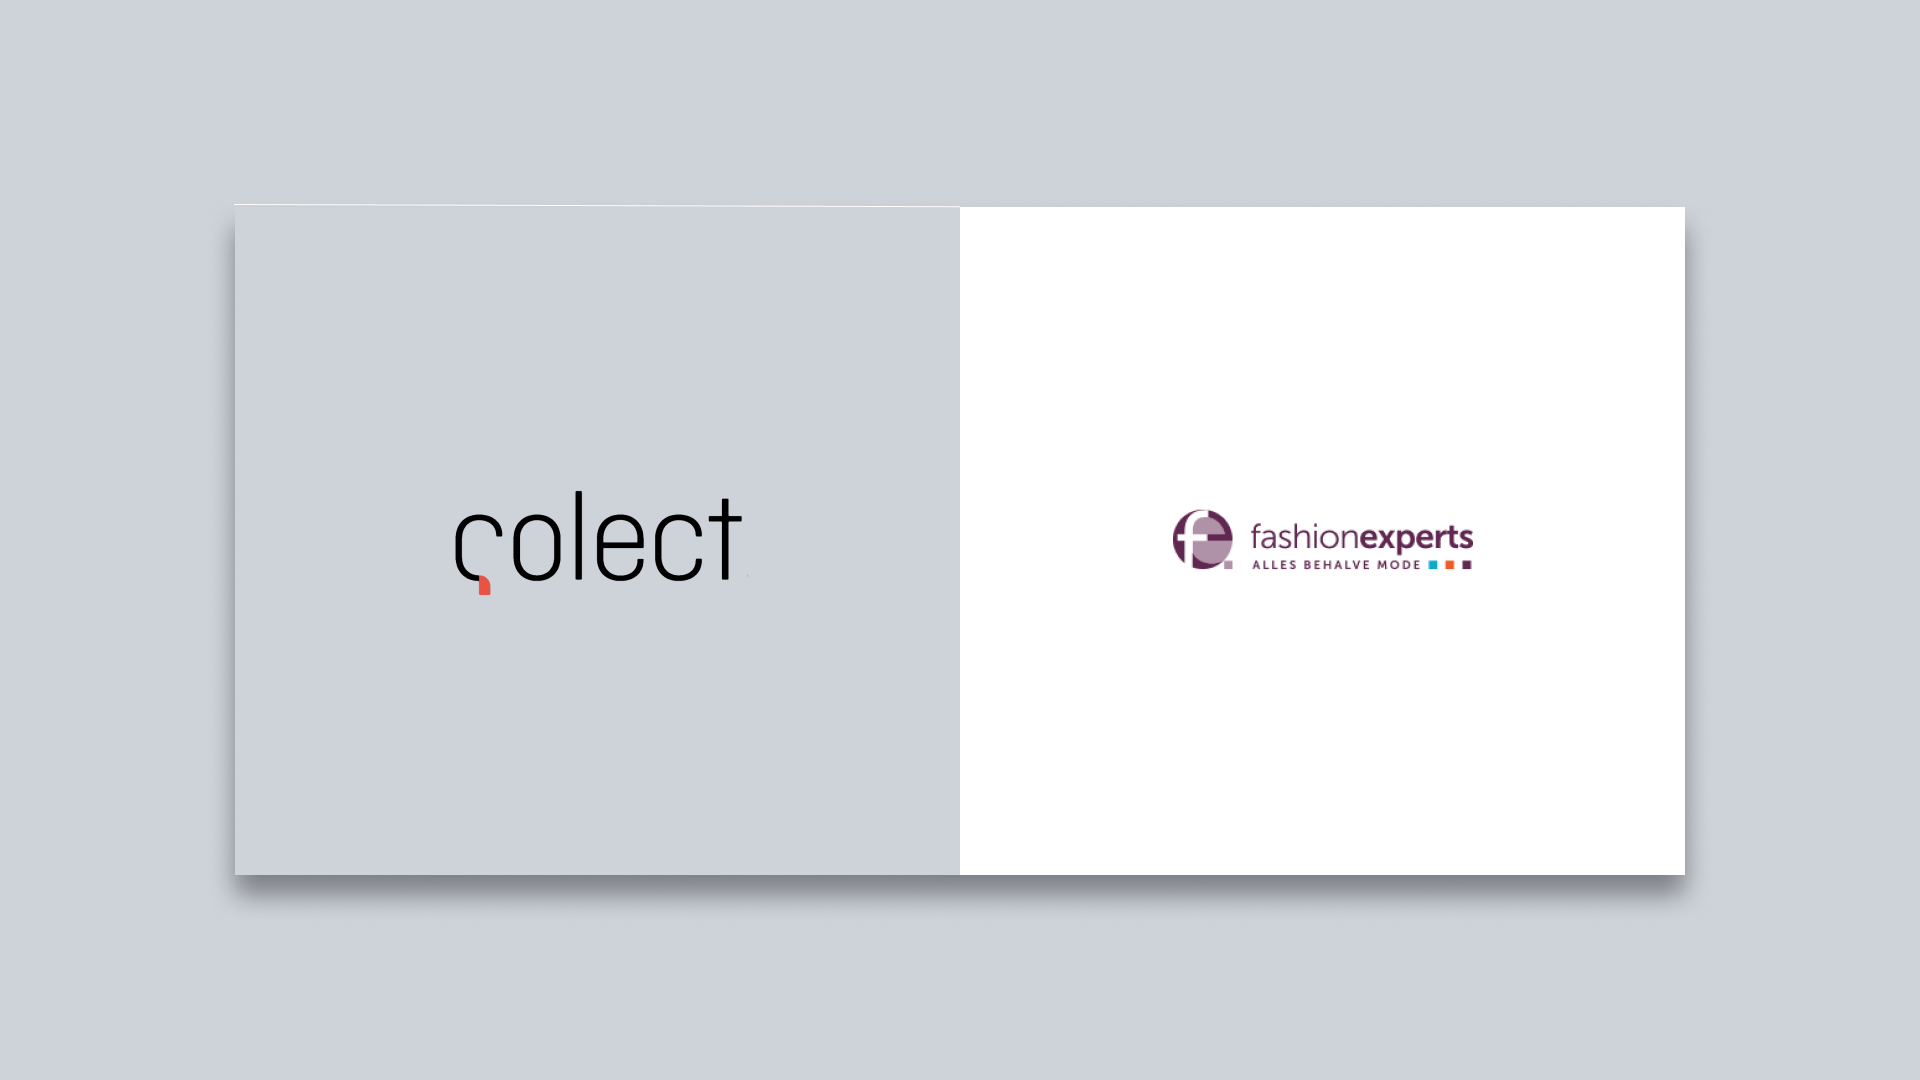 Colect and FashionExperts intensify collaboration